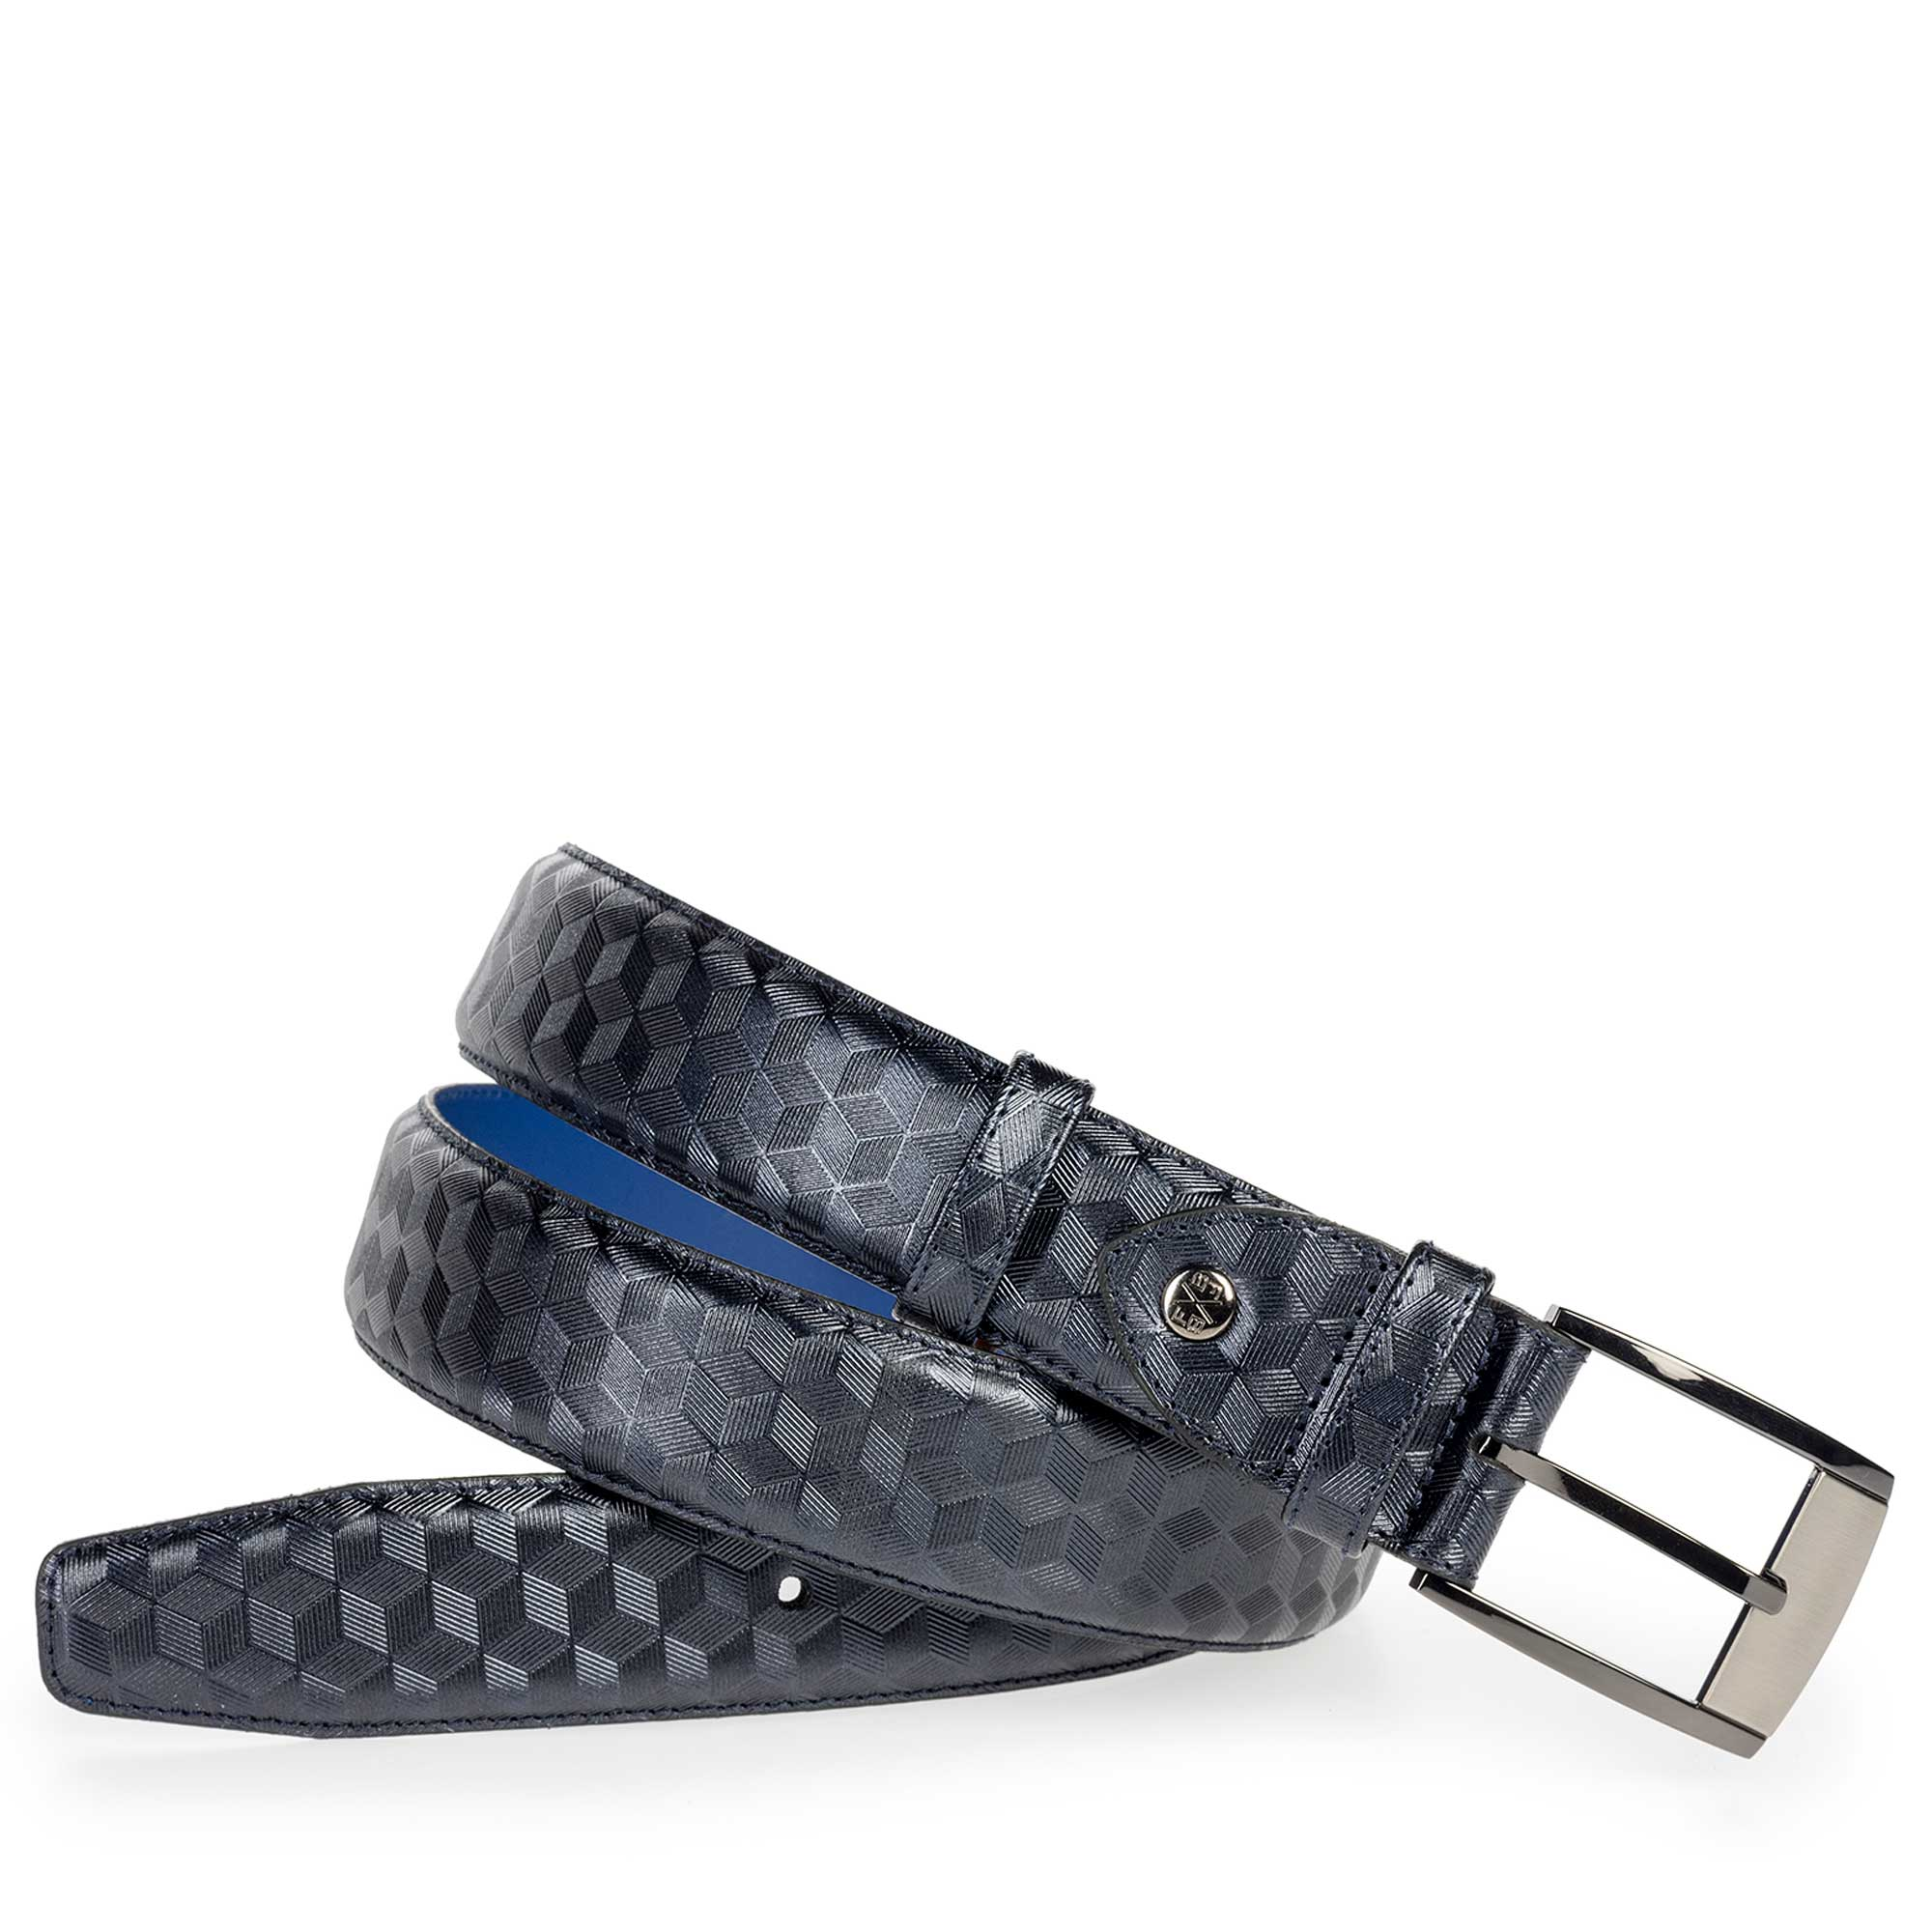 75180/40 - Blue leather belt with hexagon print